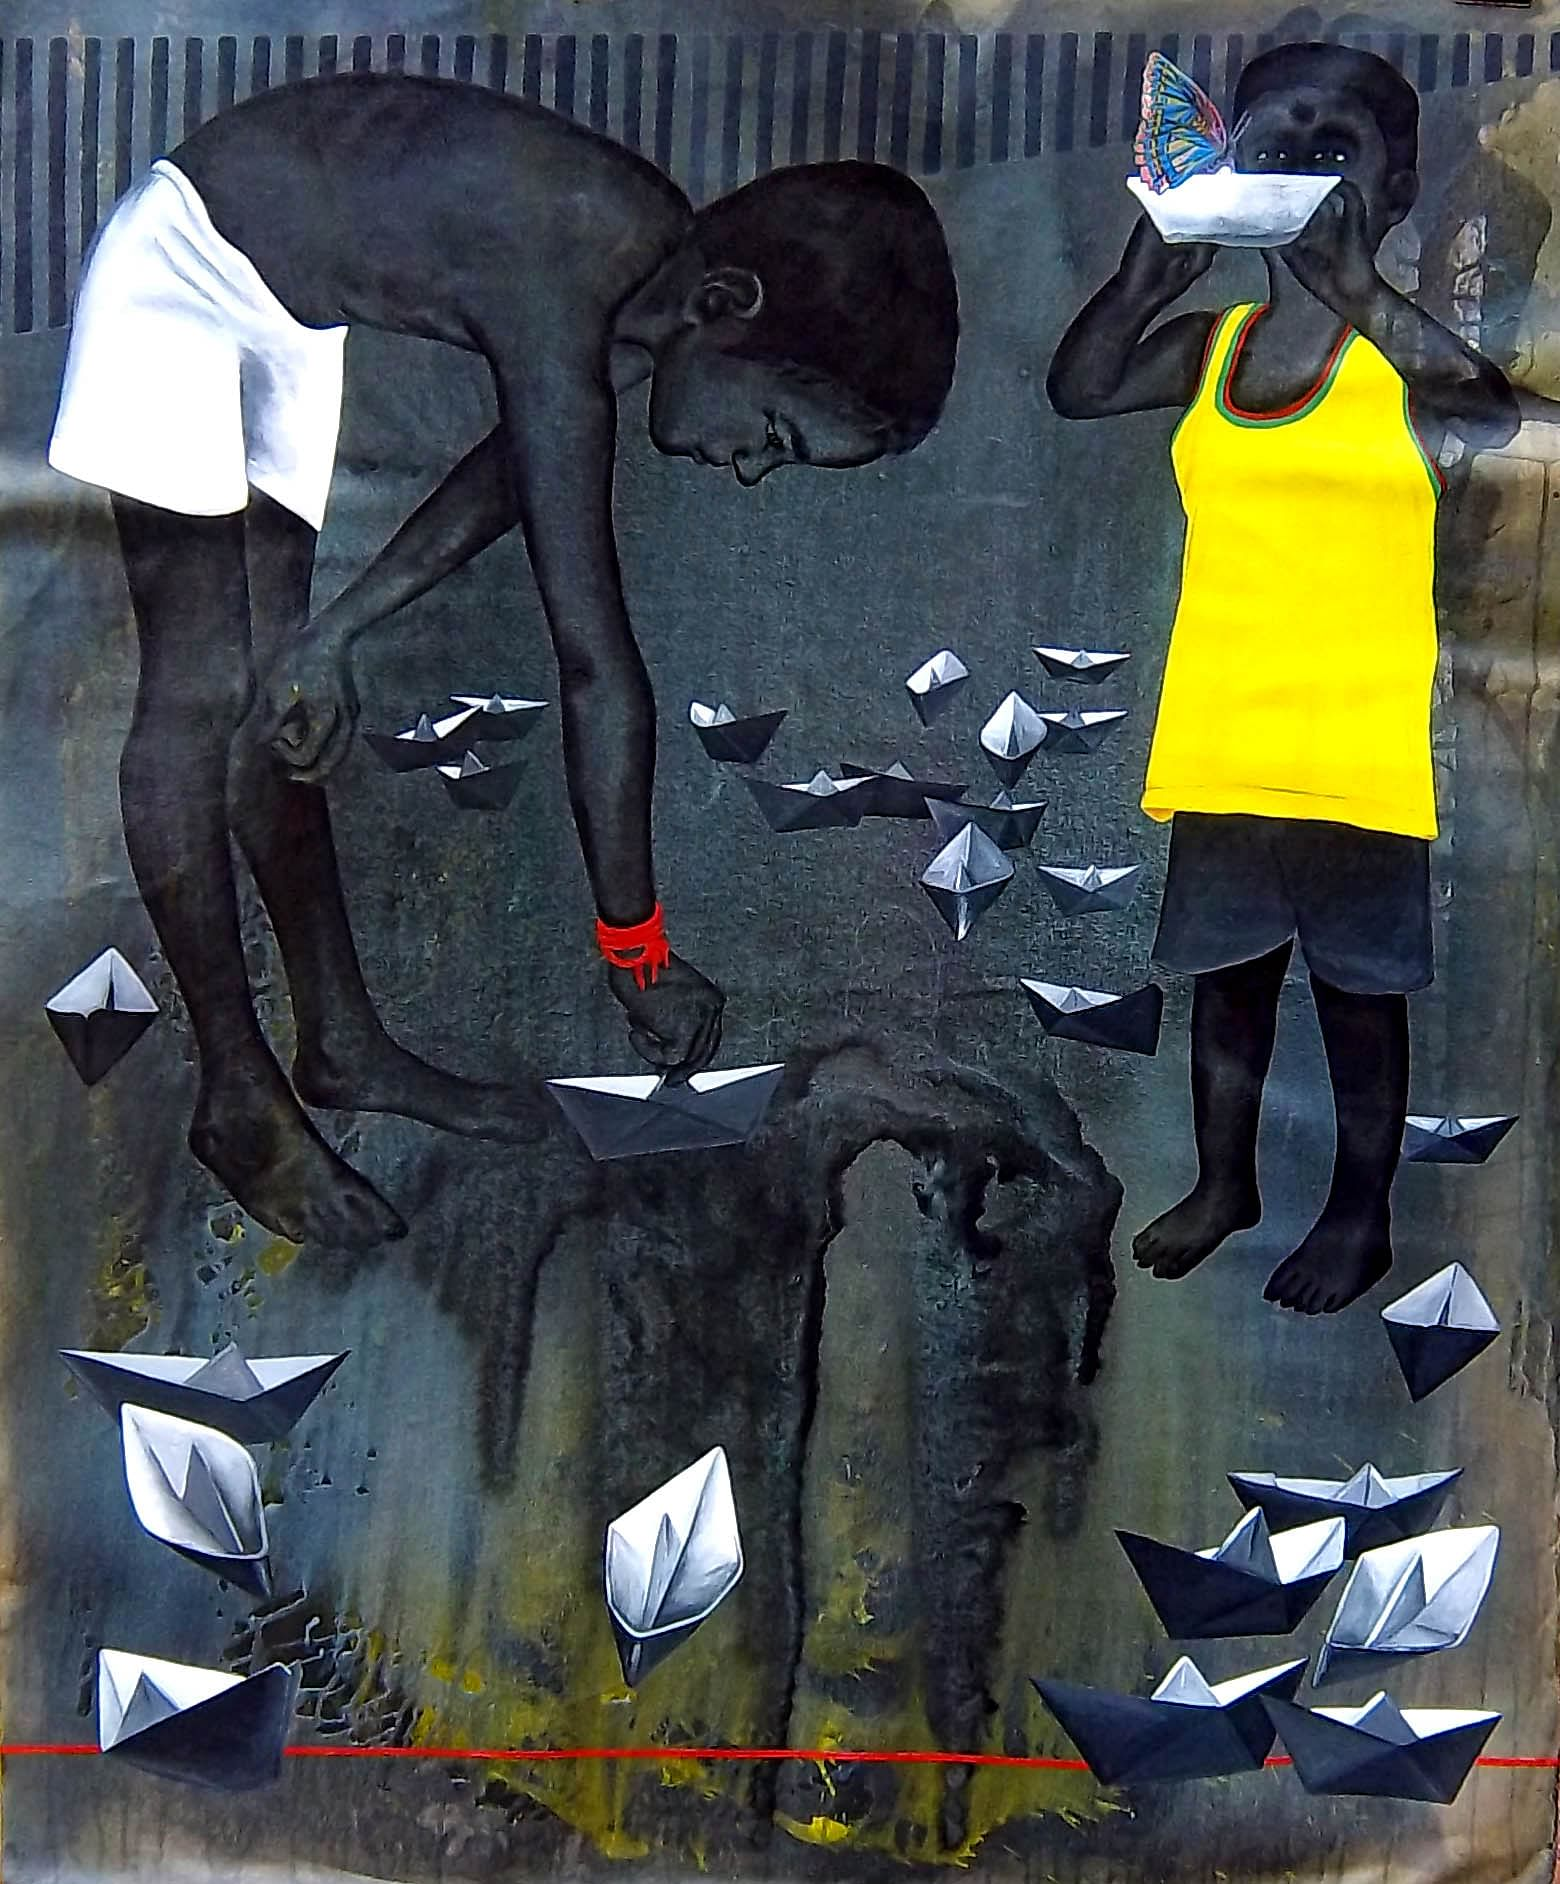 Avijit Roy1.Kids with paper boats and a butterfly on another paper boat